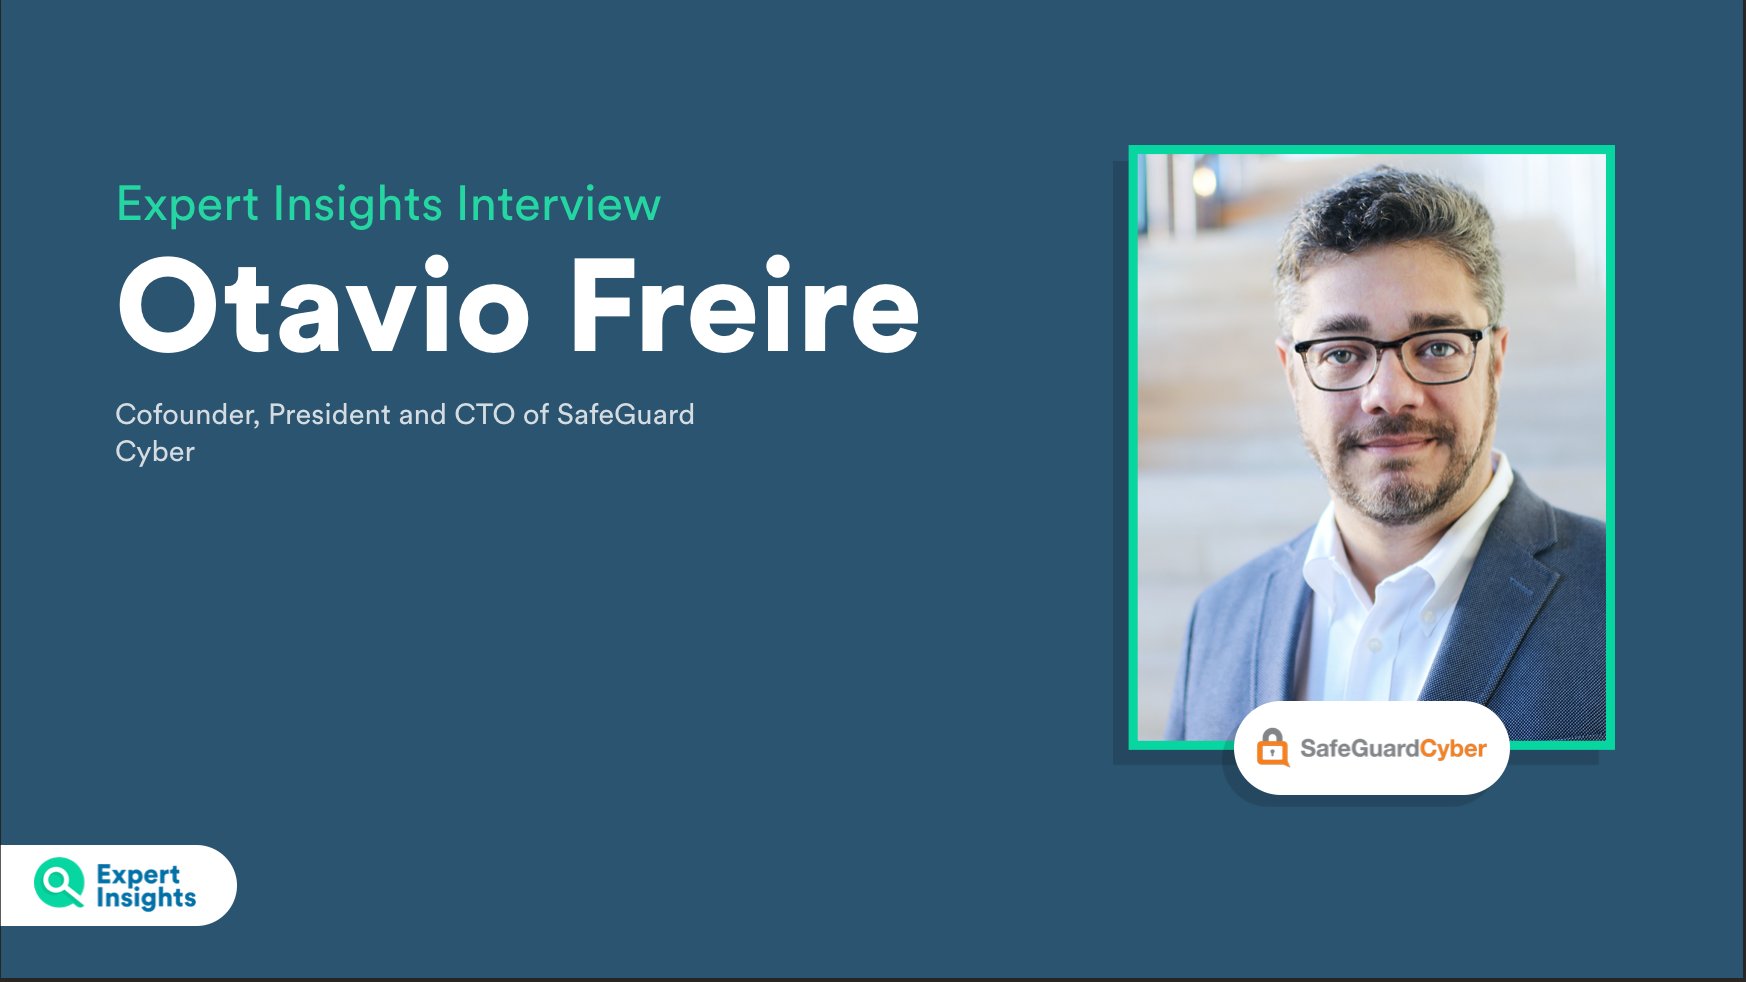 Otavio Freire - Expert Insights interview